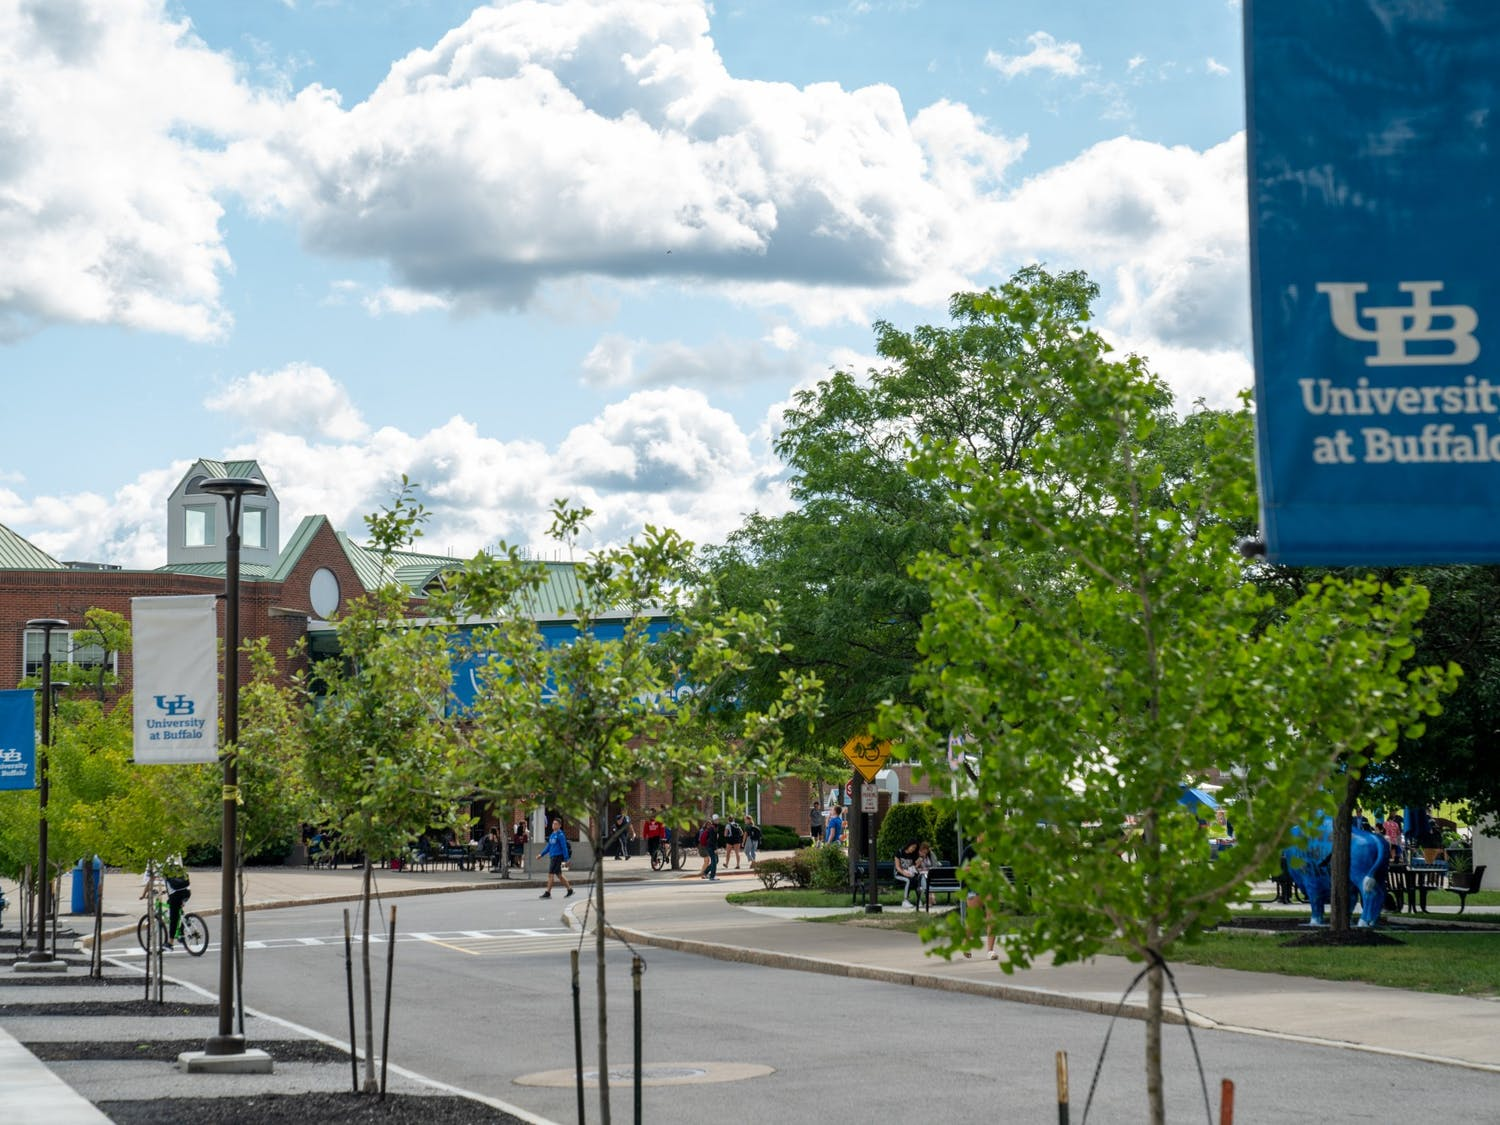 UB has received a grant from the National Science Foundation to support a more inclusive learning environment.